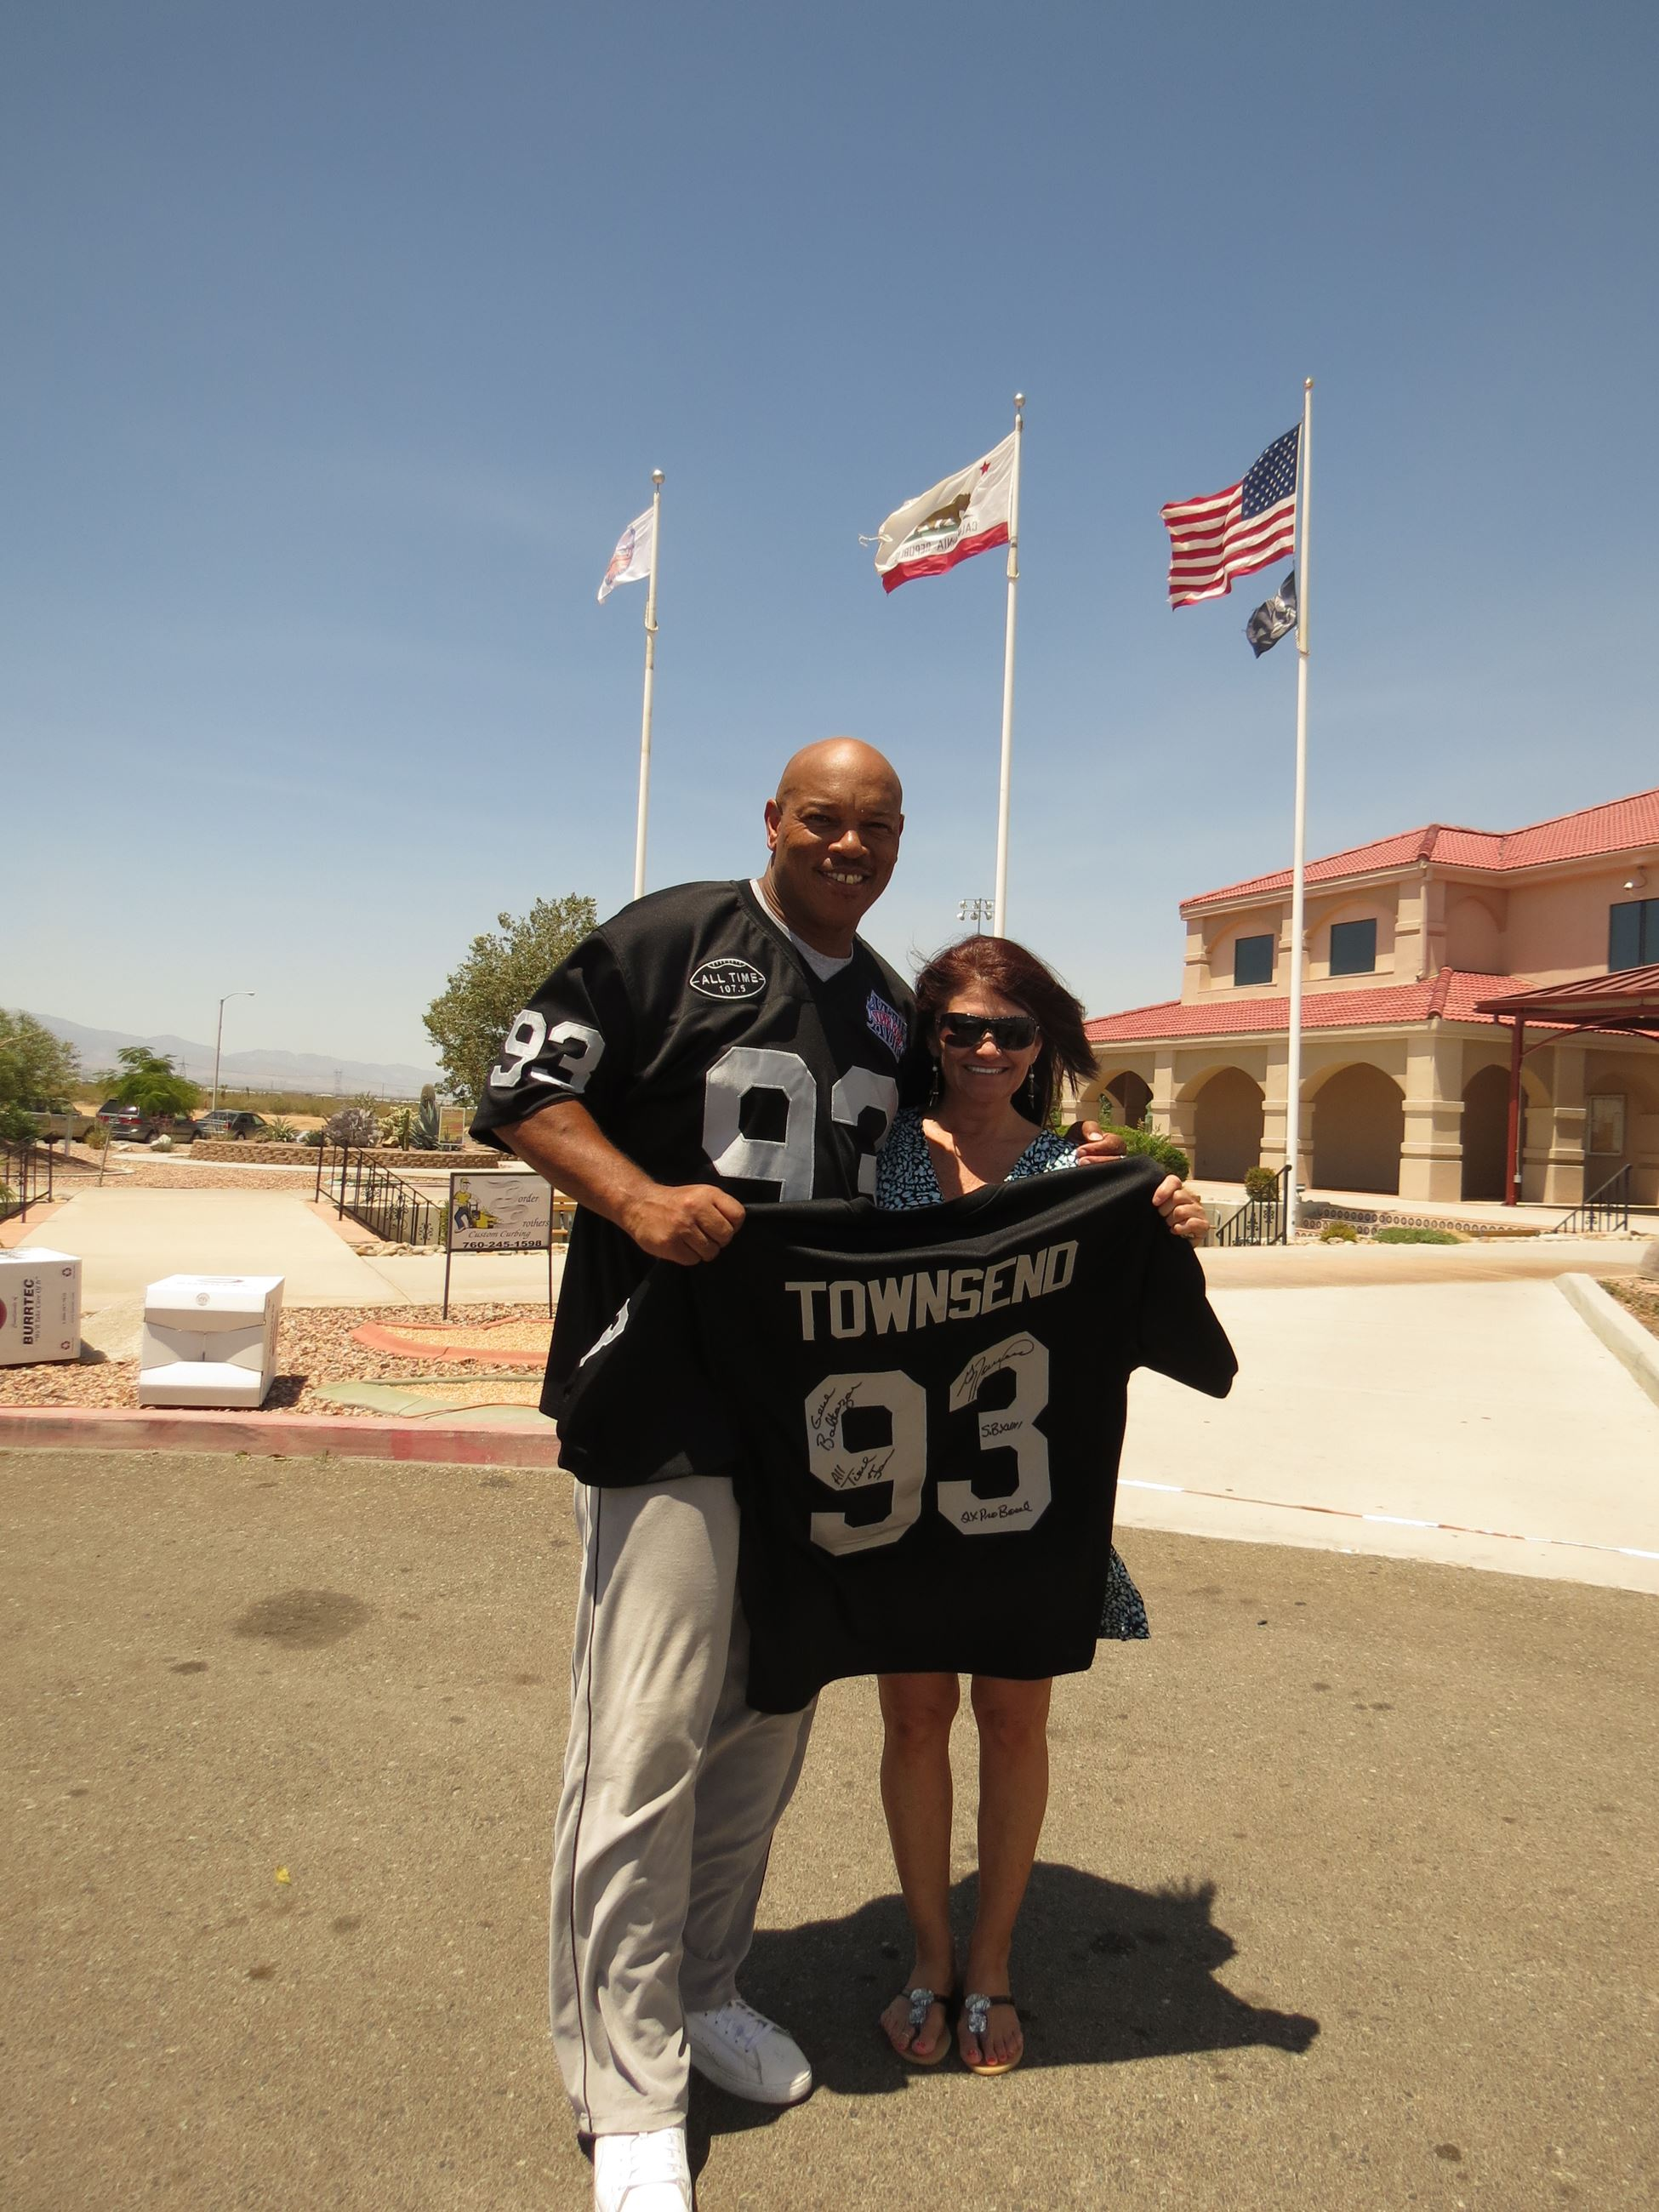 "Man in a Football jersey standing with woman both holding a jersey that says ""Townsend 93"""